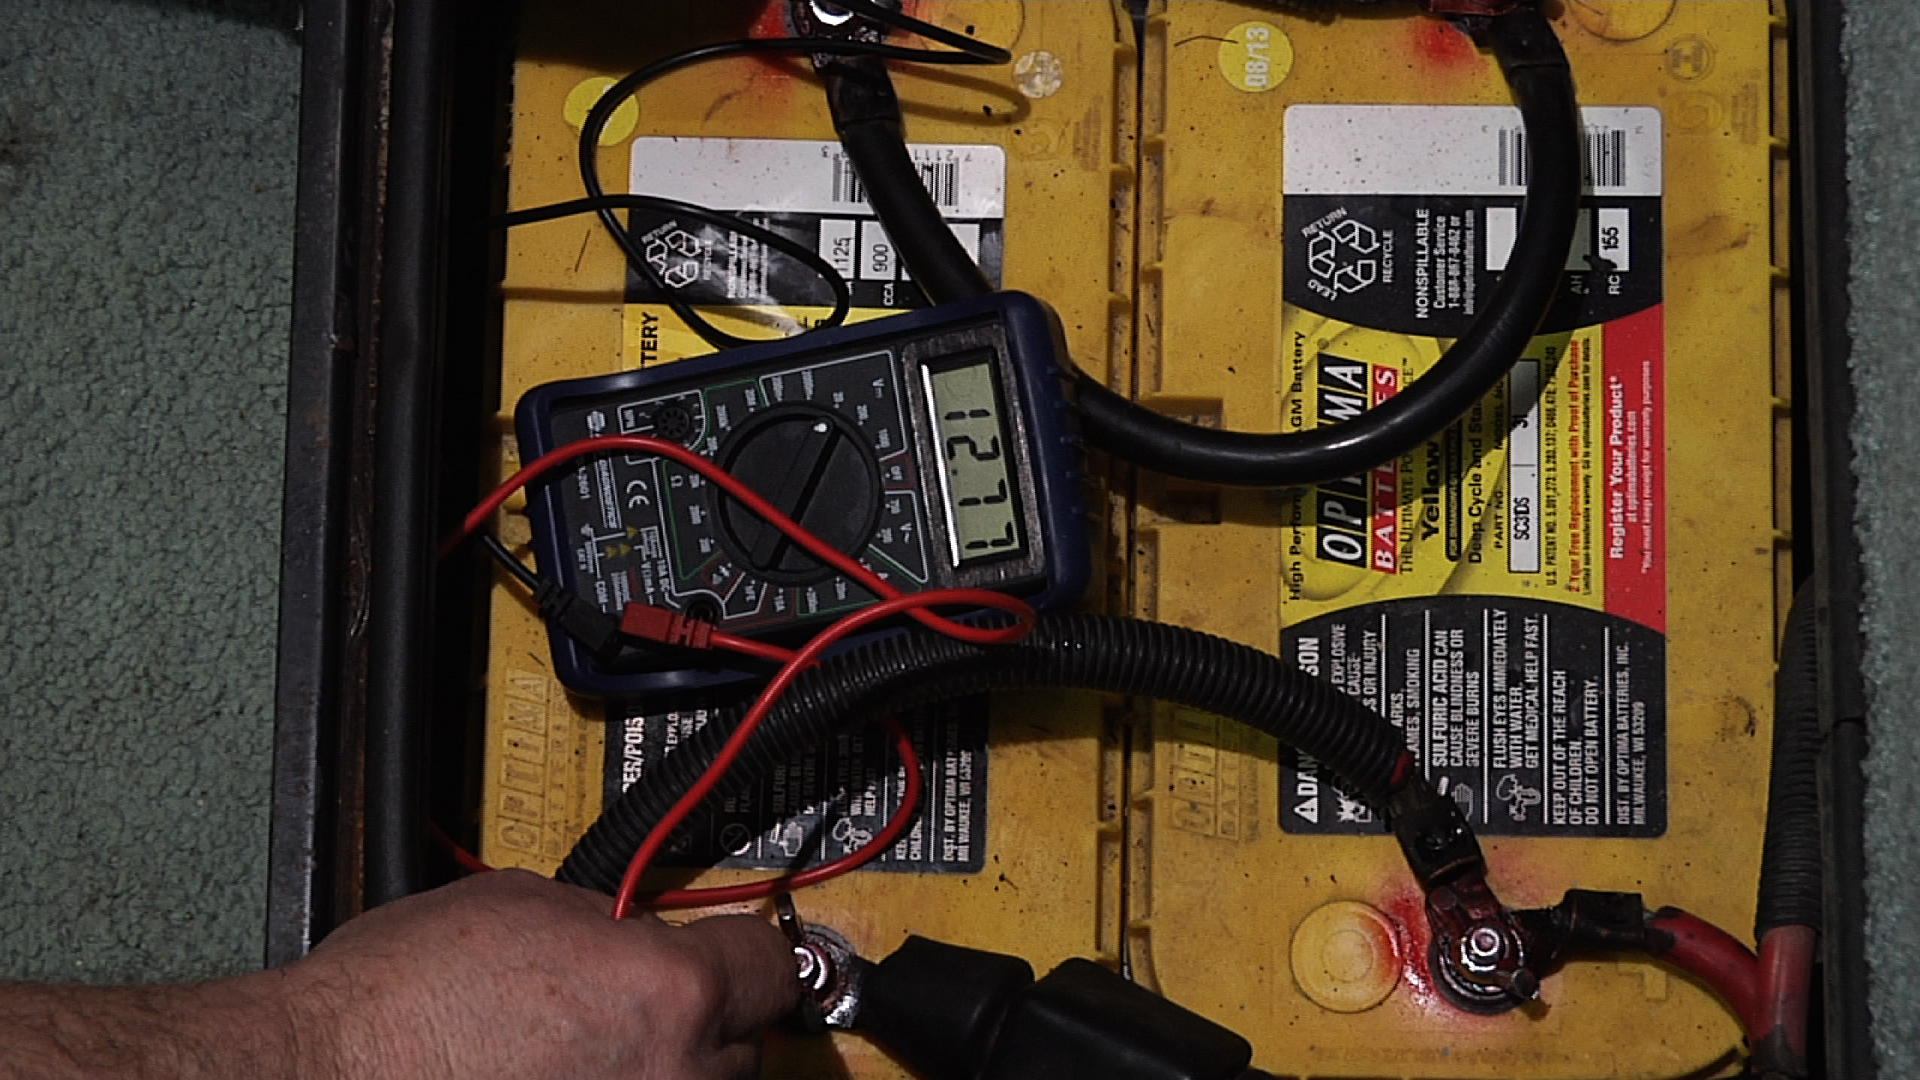 Rv Battery Maintenance Testing House Batteries Thor Motorhome Wiring Diagram